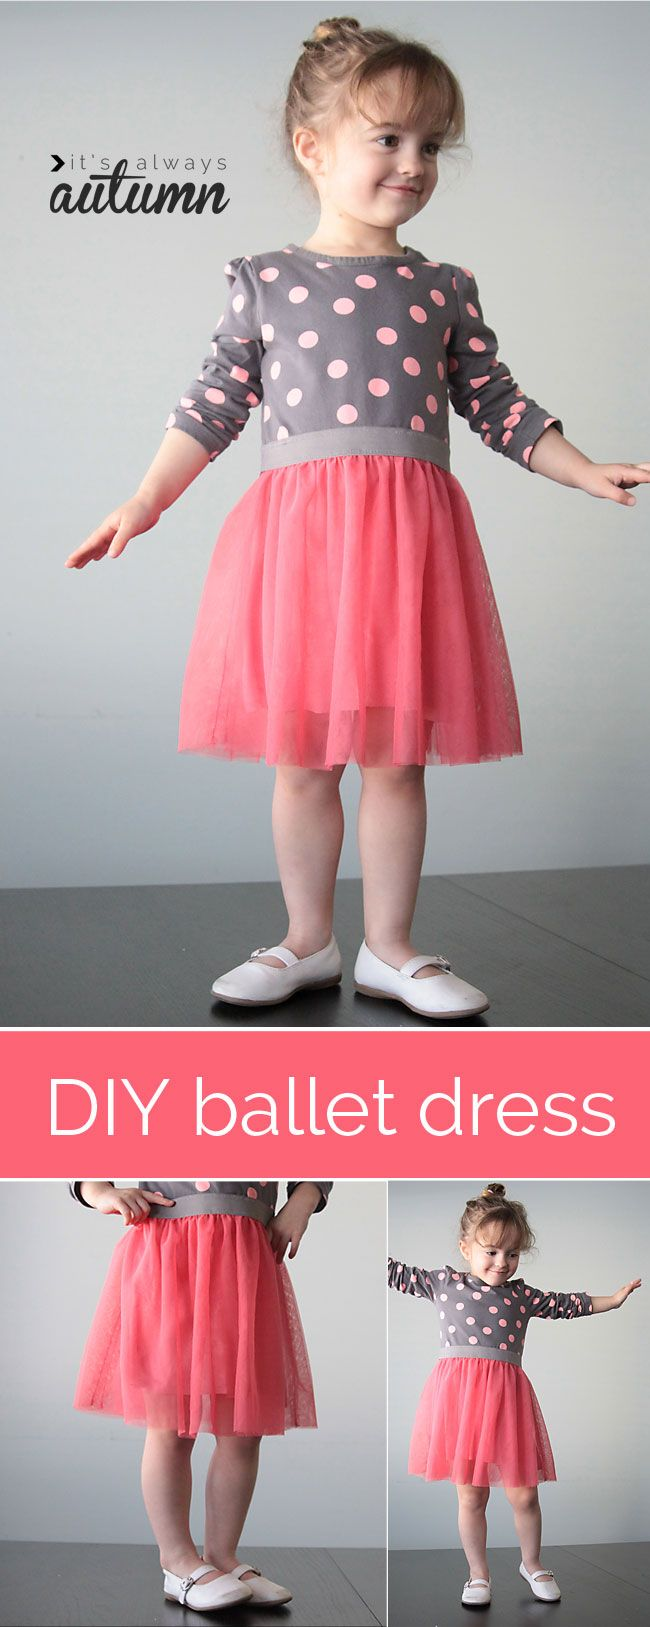 Dresses skirts clothes women disney store - This Could Be The Cutest Little Girls Dress Ever Add A Tulle Skirt To A Store Bought Tee For An Adorable Ballet Dress Easy Sewing Tutorial